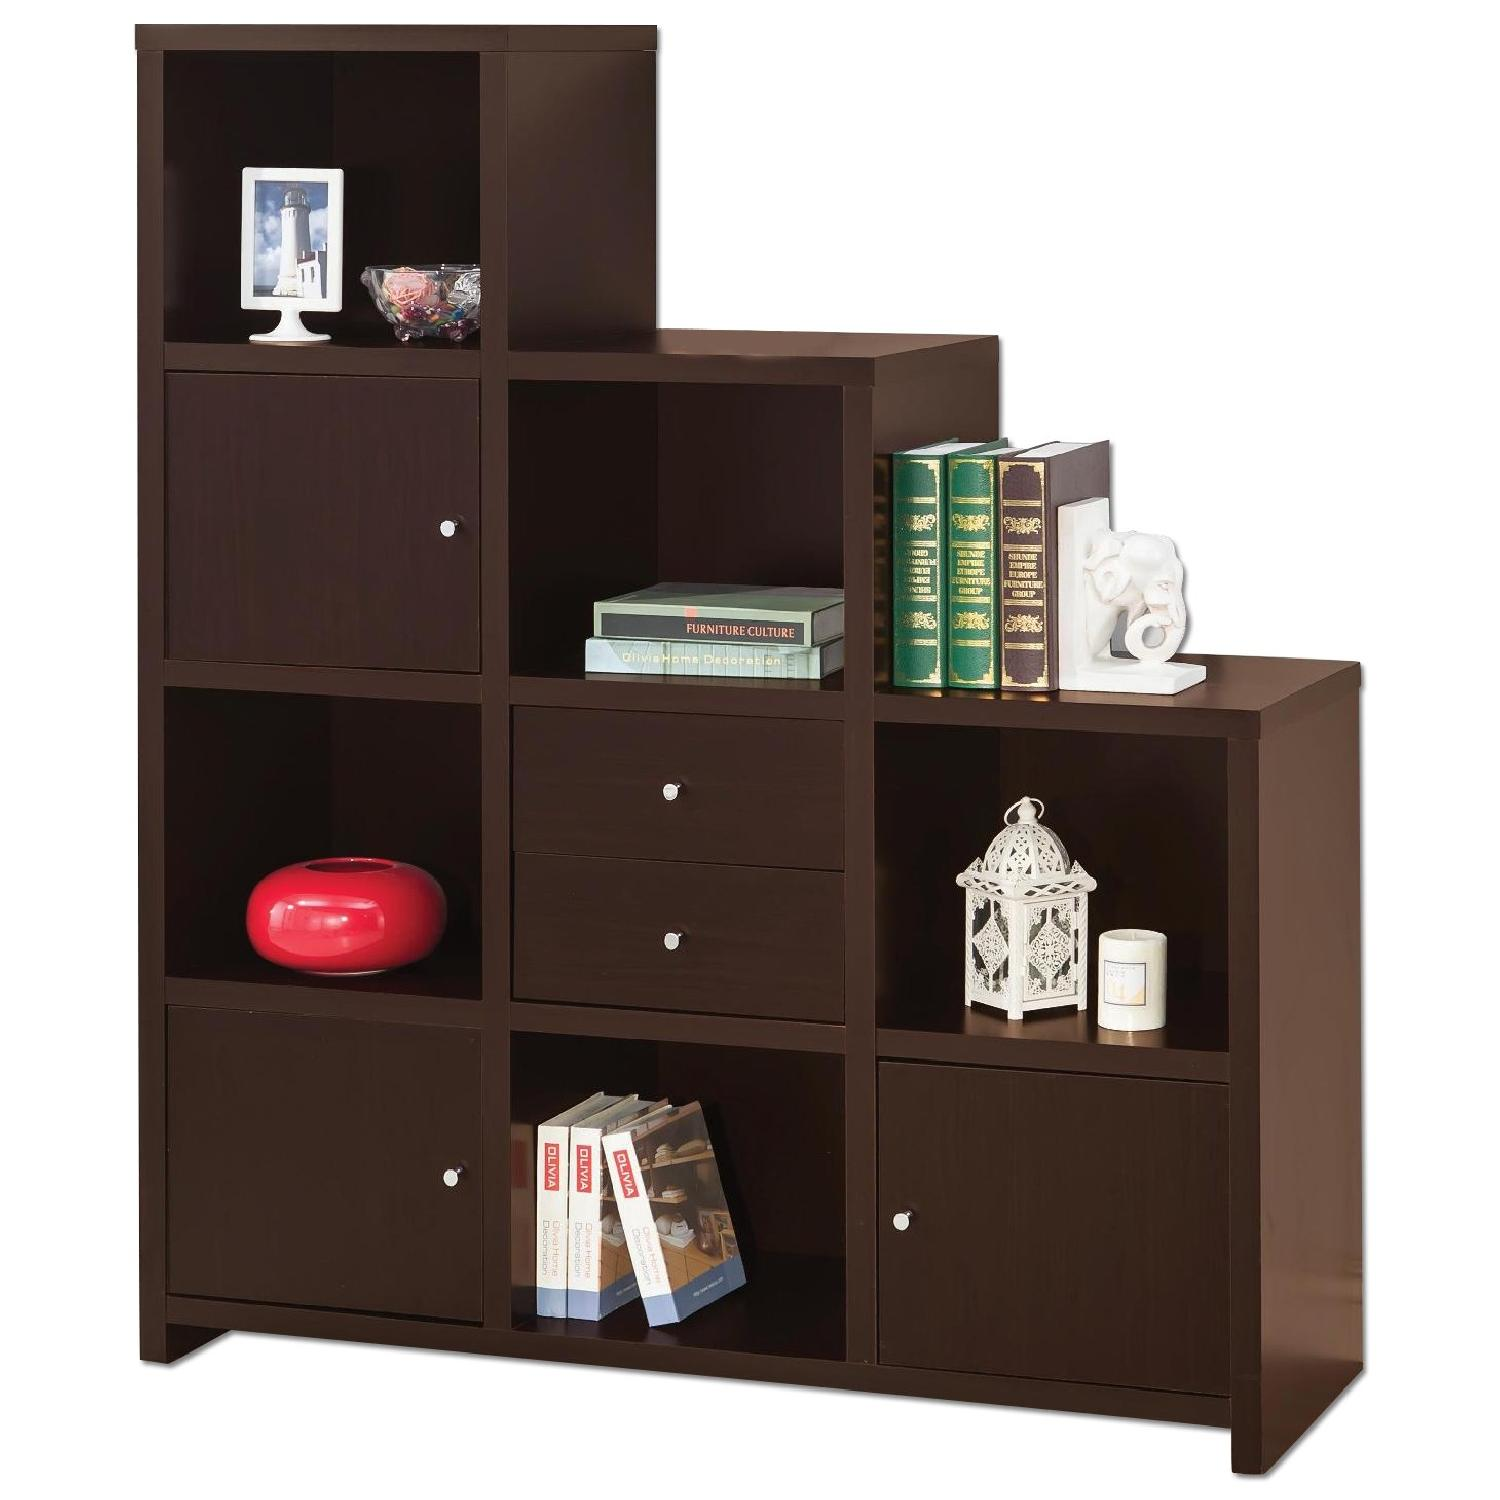 Reversible Asymmetric Shelf Cabinet in Cappuccino Finish